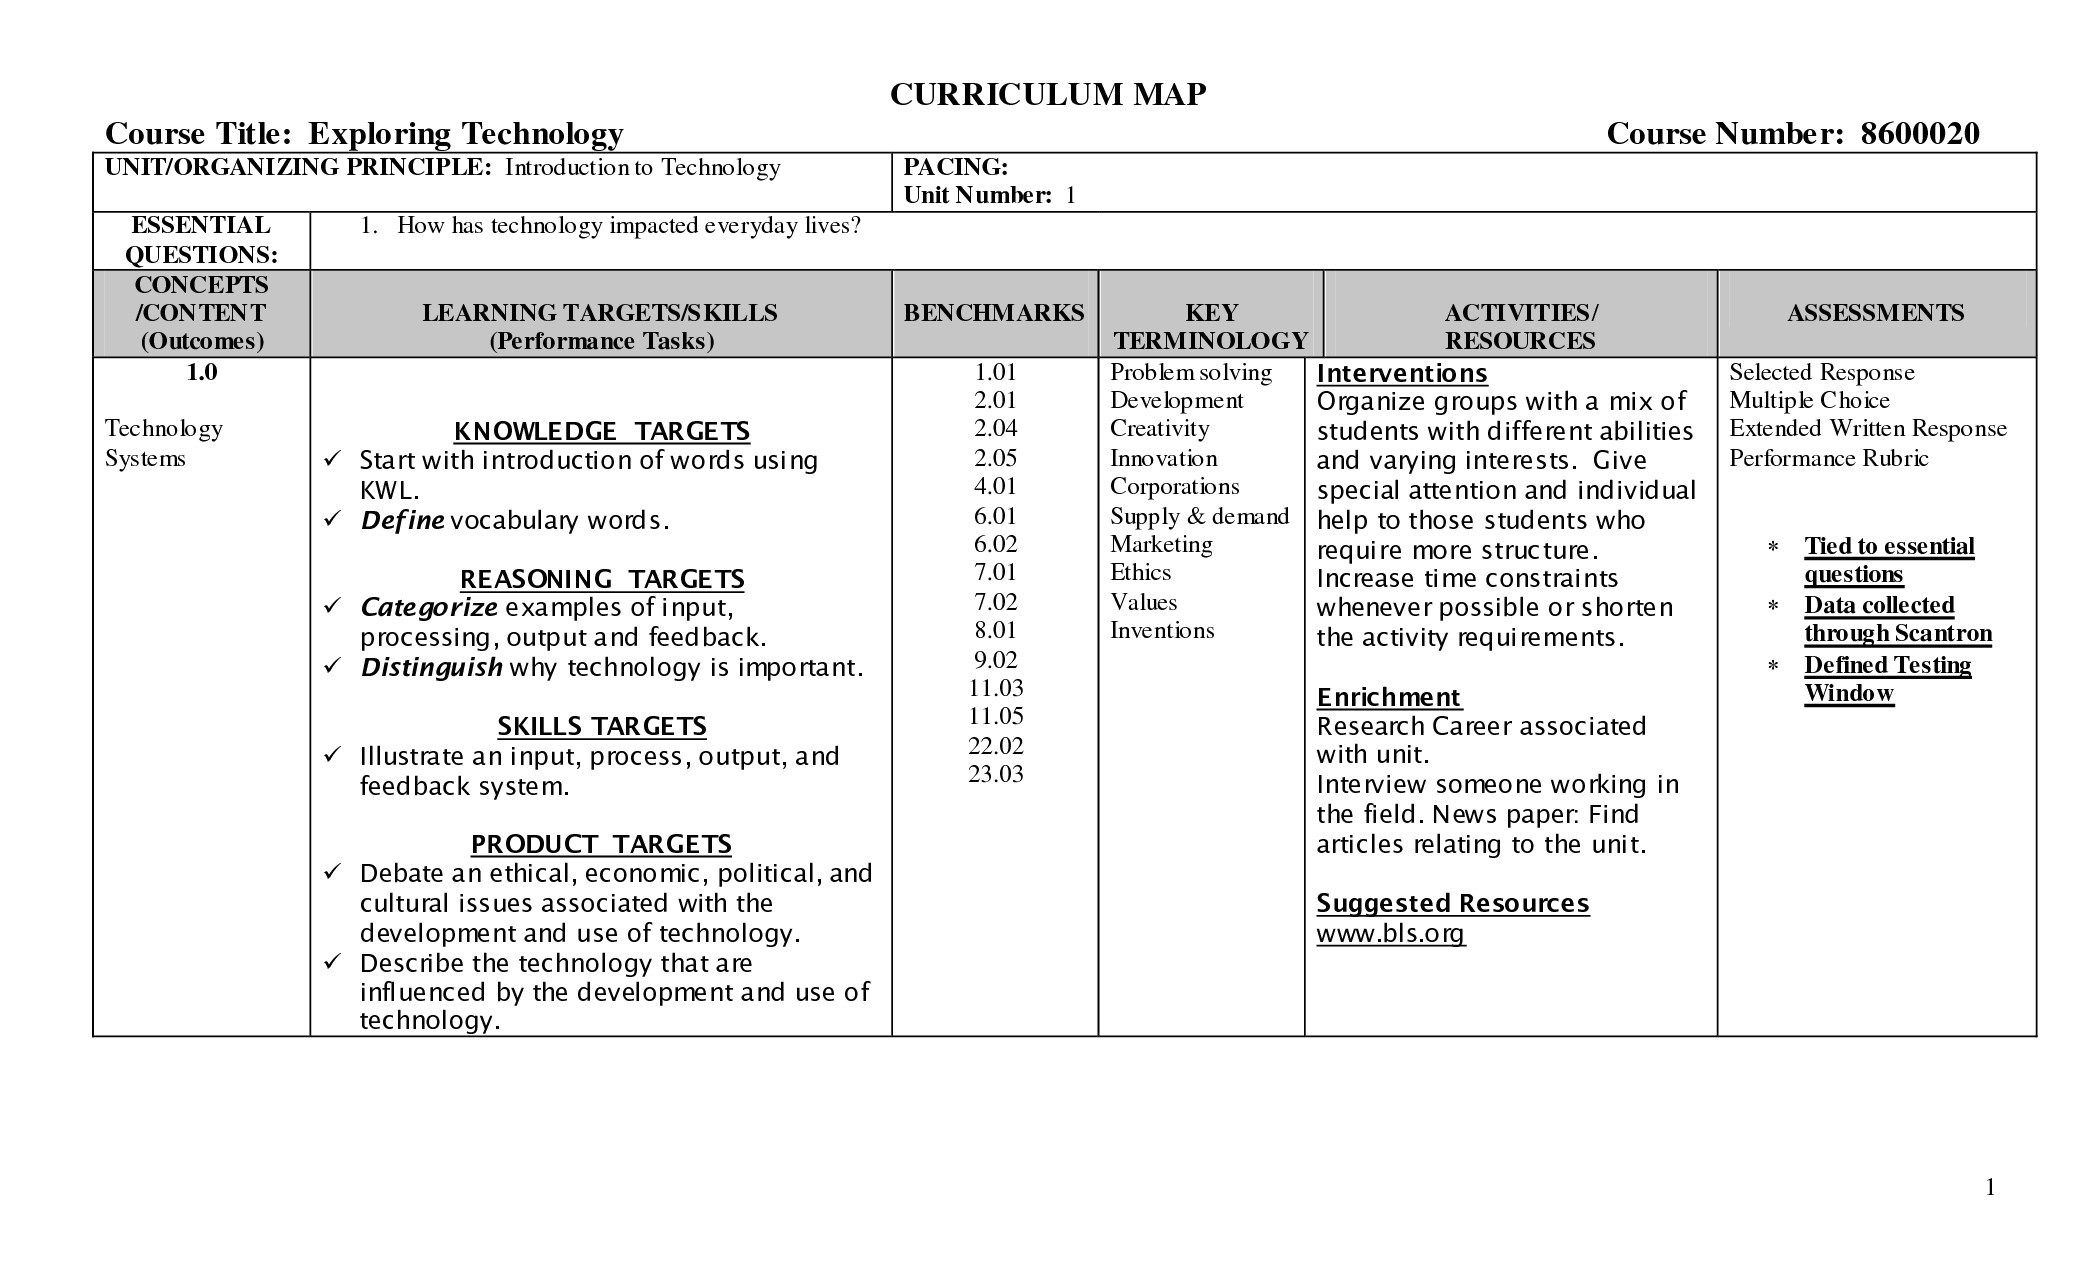 ifrs conversion template new conversion plan template best blank curriculum map template